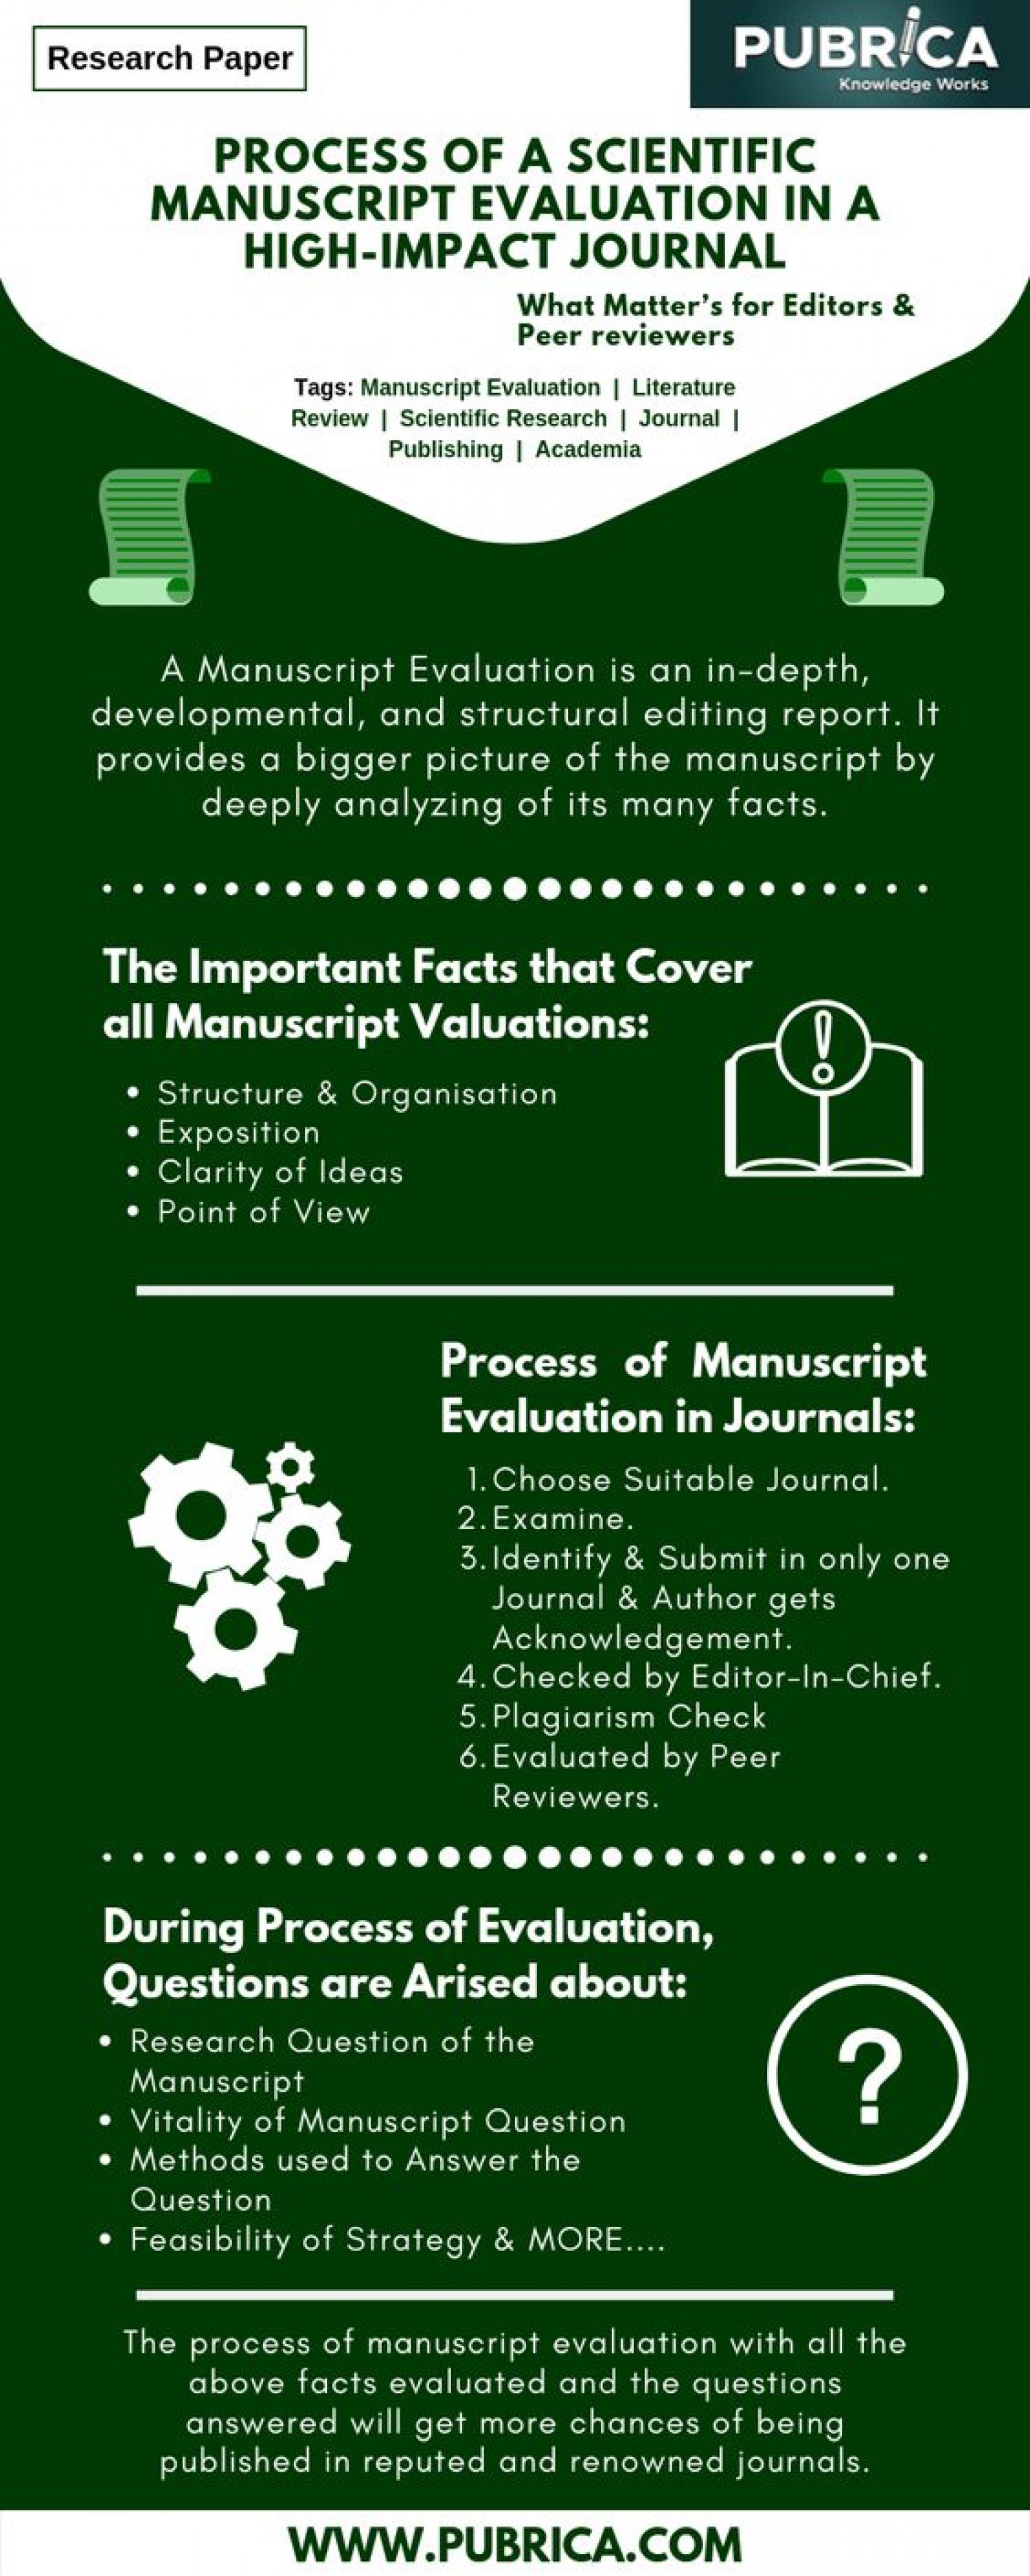 How to Evaluate a Scientific Manuscript in a High Impact Journal | Scientific Research Infographic